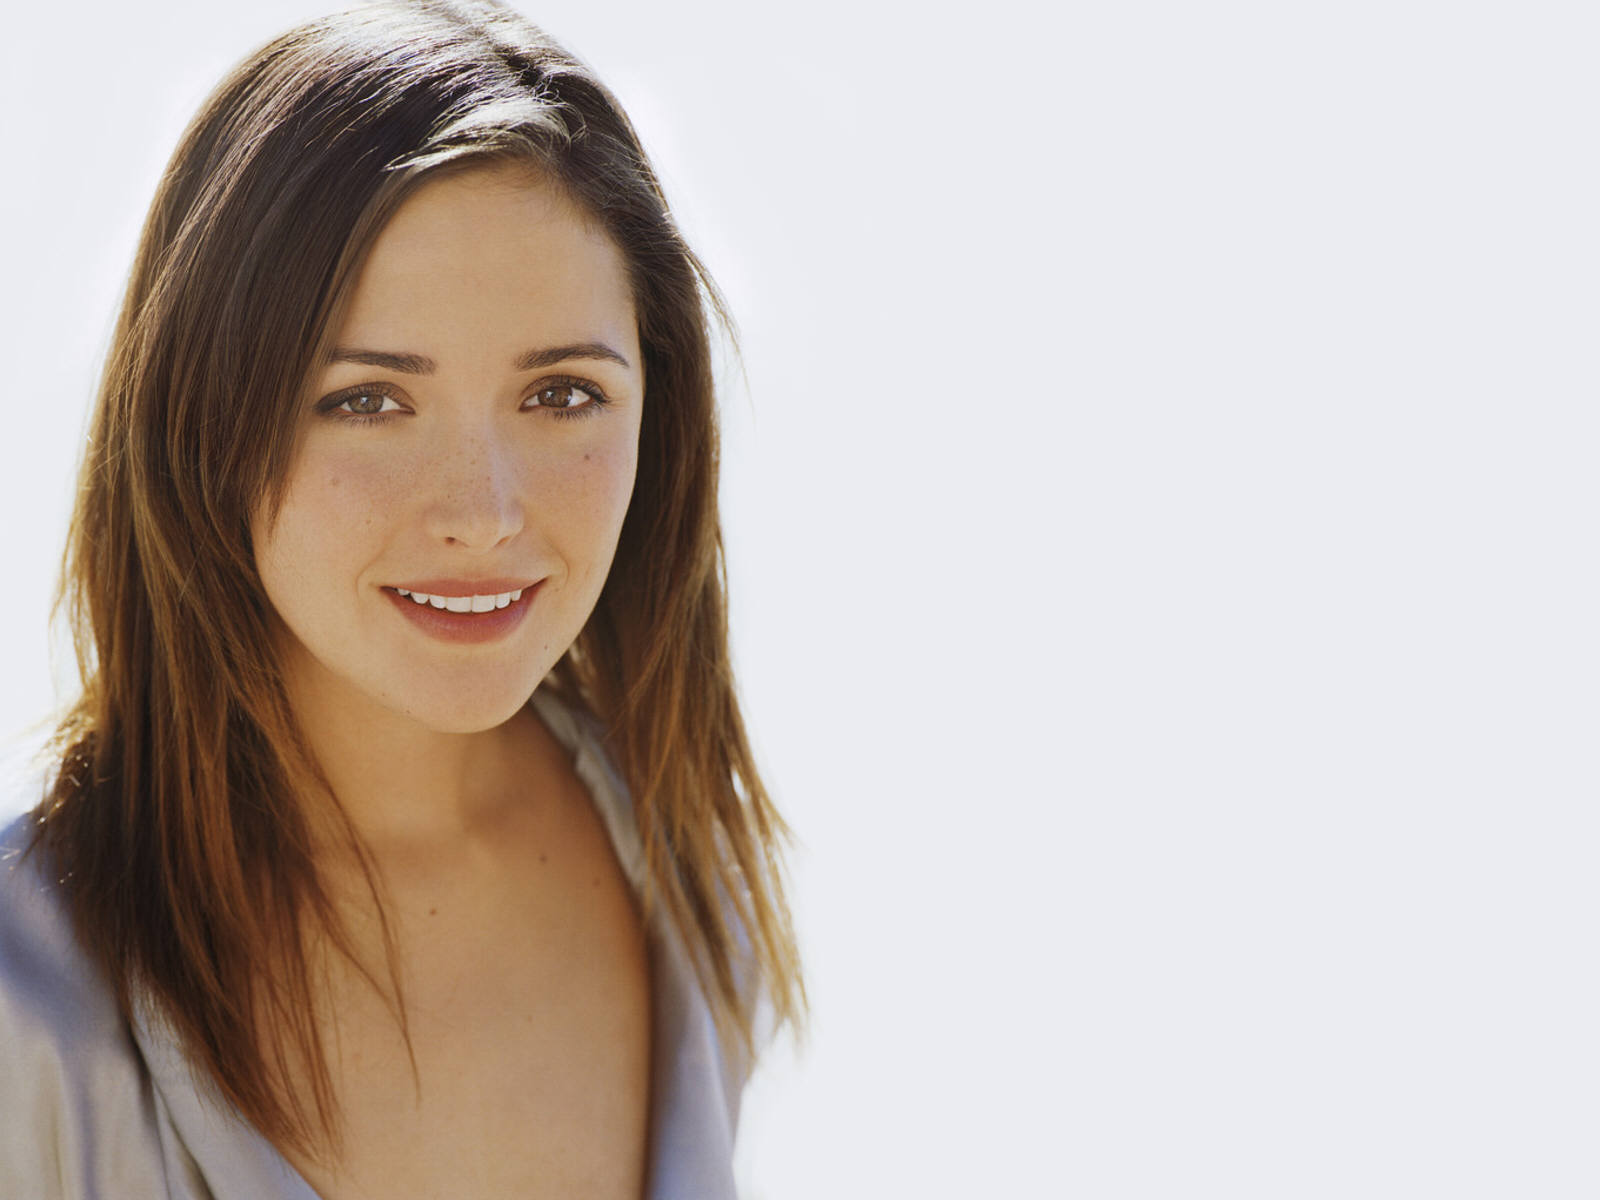 1600x1200 - Rose Byrne Wallpapers 11